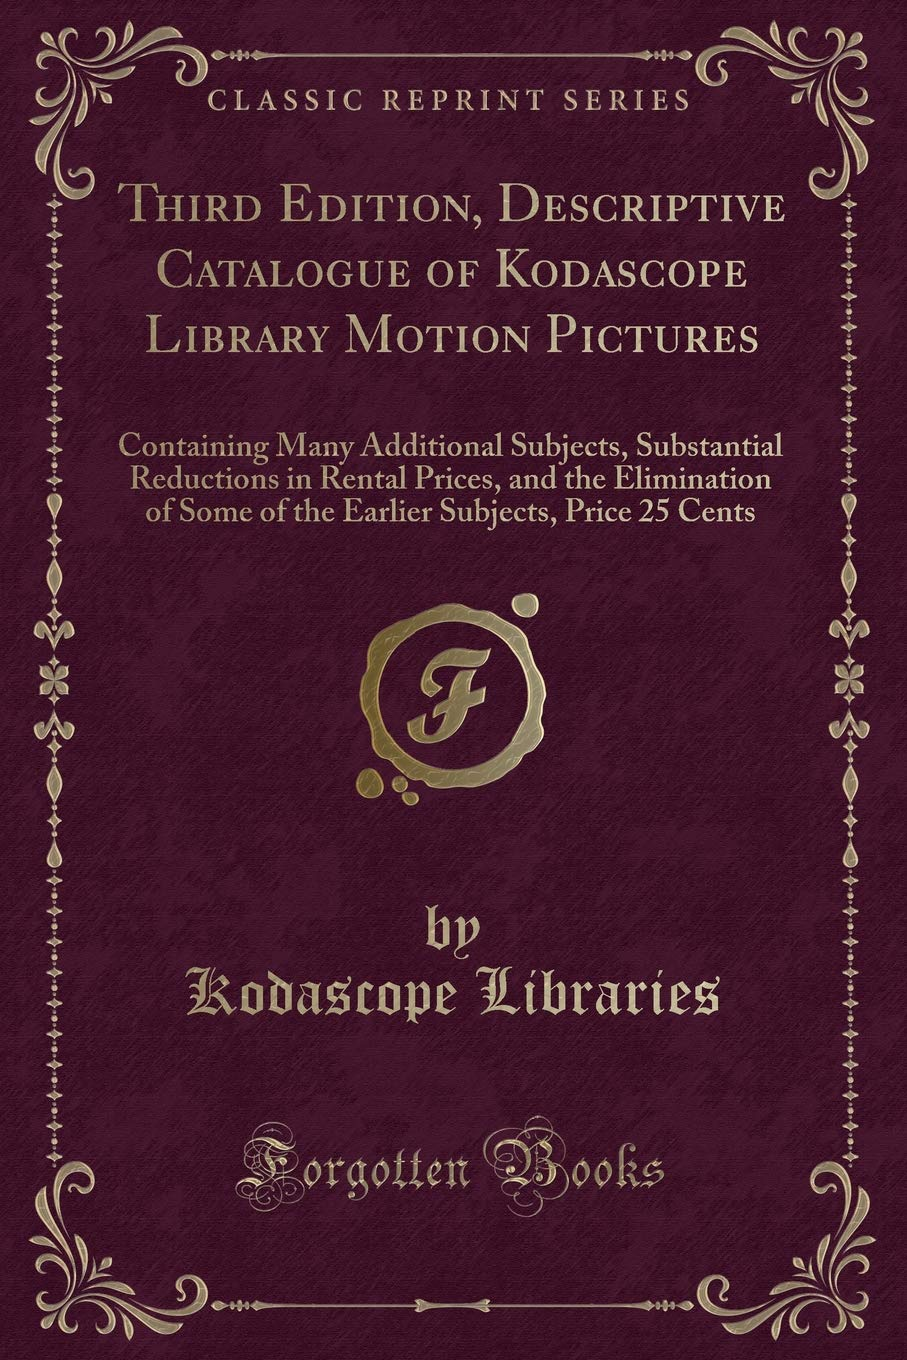 Read Online Third Edition, Descriptive Catalogue of Kodascope Library Motion Pictures: Containing Many Additional Subjects, Substantial Reductions in Rental ... Subjects, Price 25 Cents (Classic Reprint) ebook